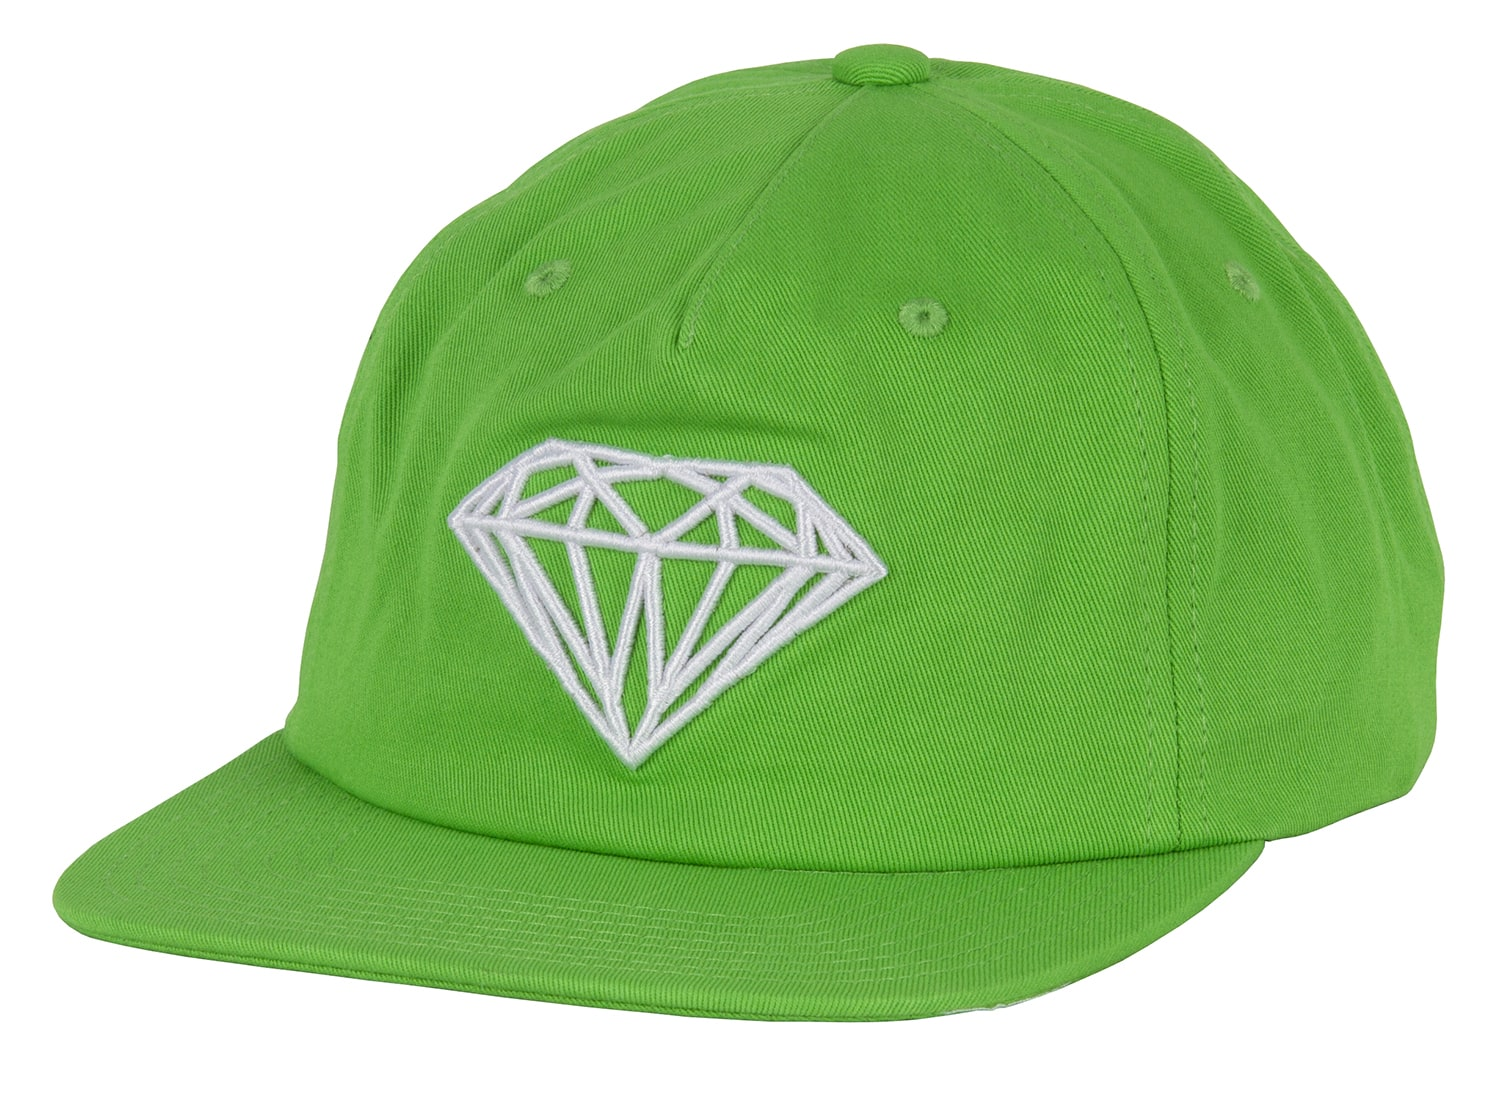 Diamond Supply Co Brilliant Unstructured Snapback Cap - Green ... 45073af3f2f3